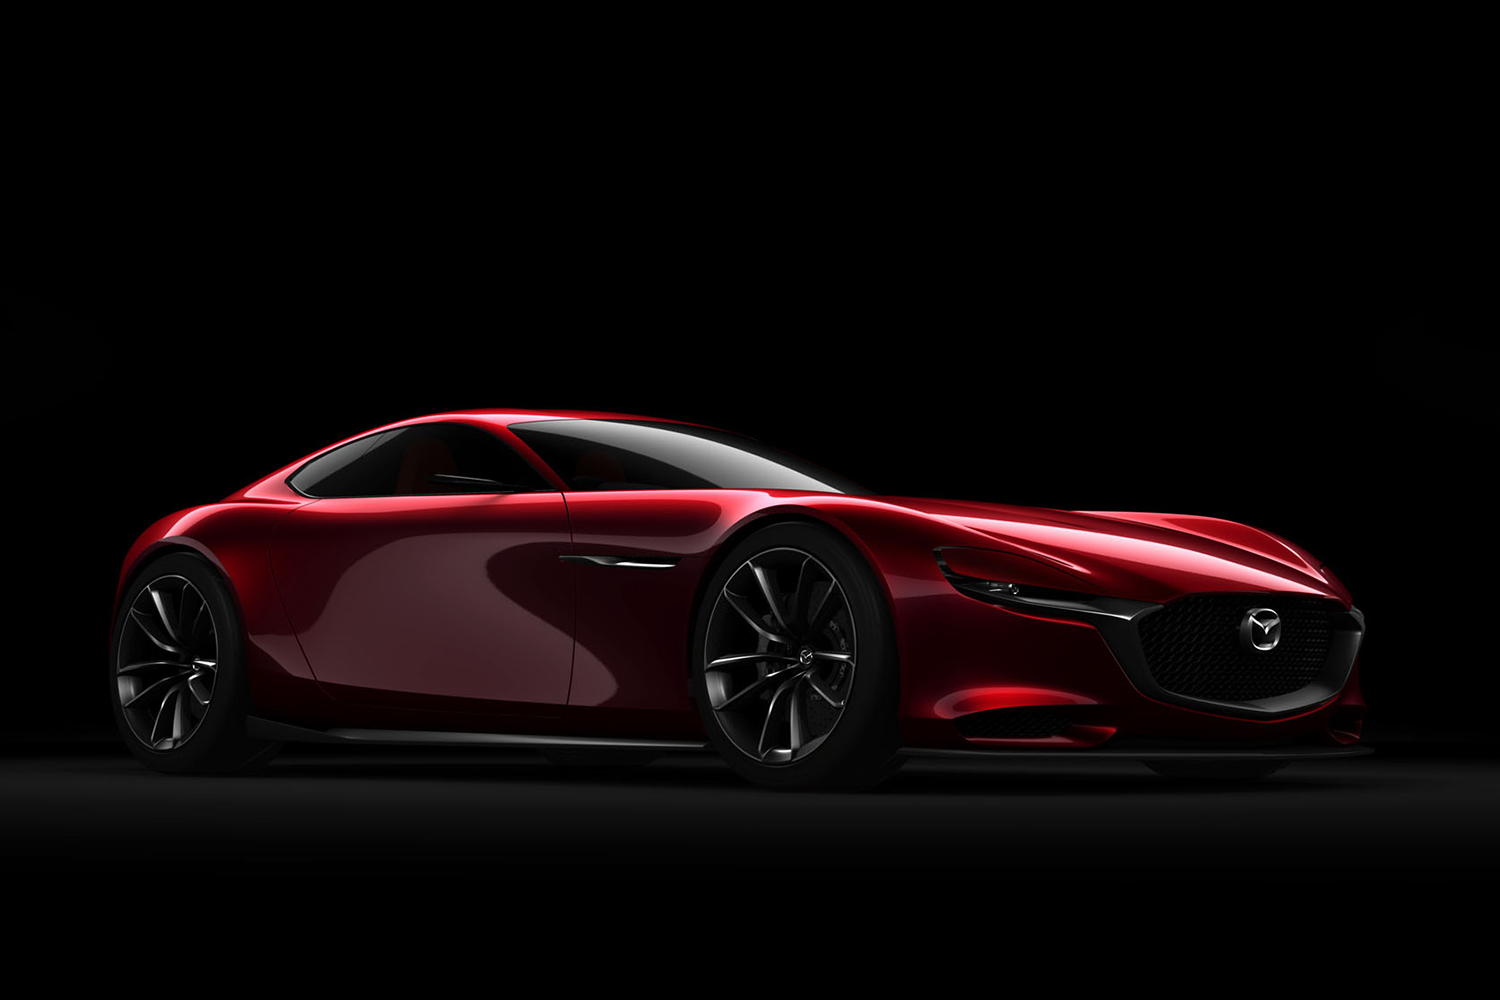 Mazda RX-9 To Go On Sale in 2020, Latest Report Says